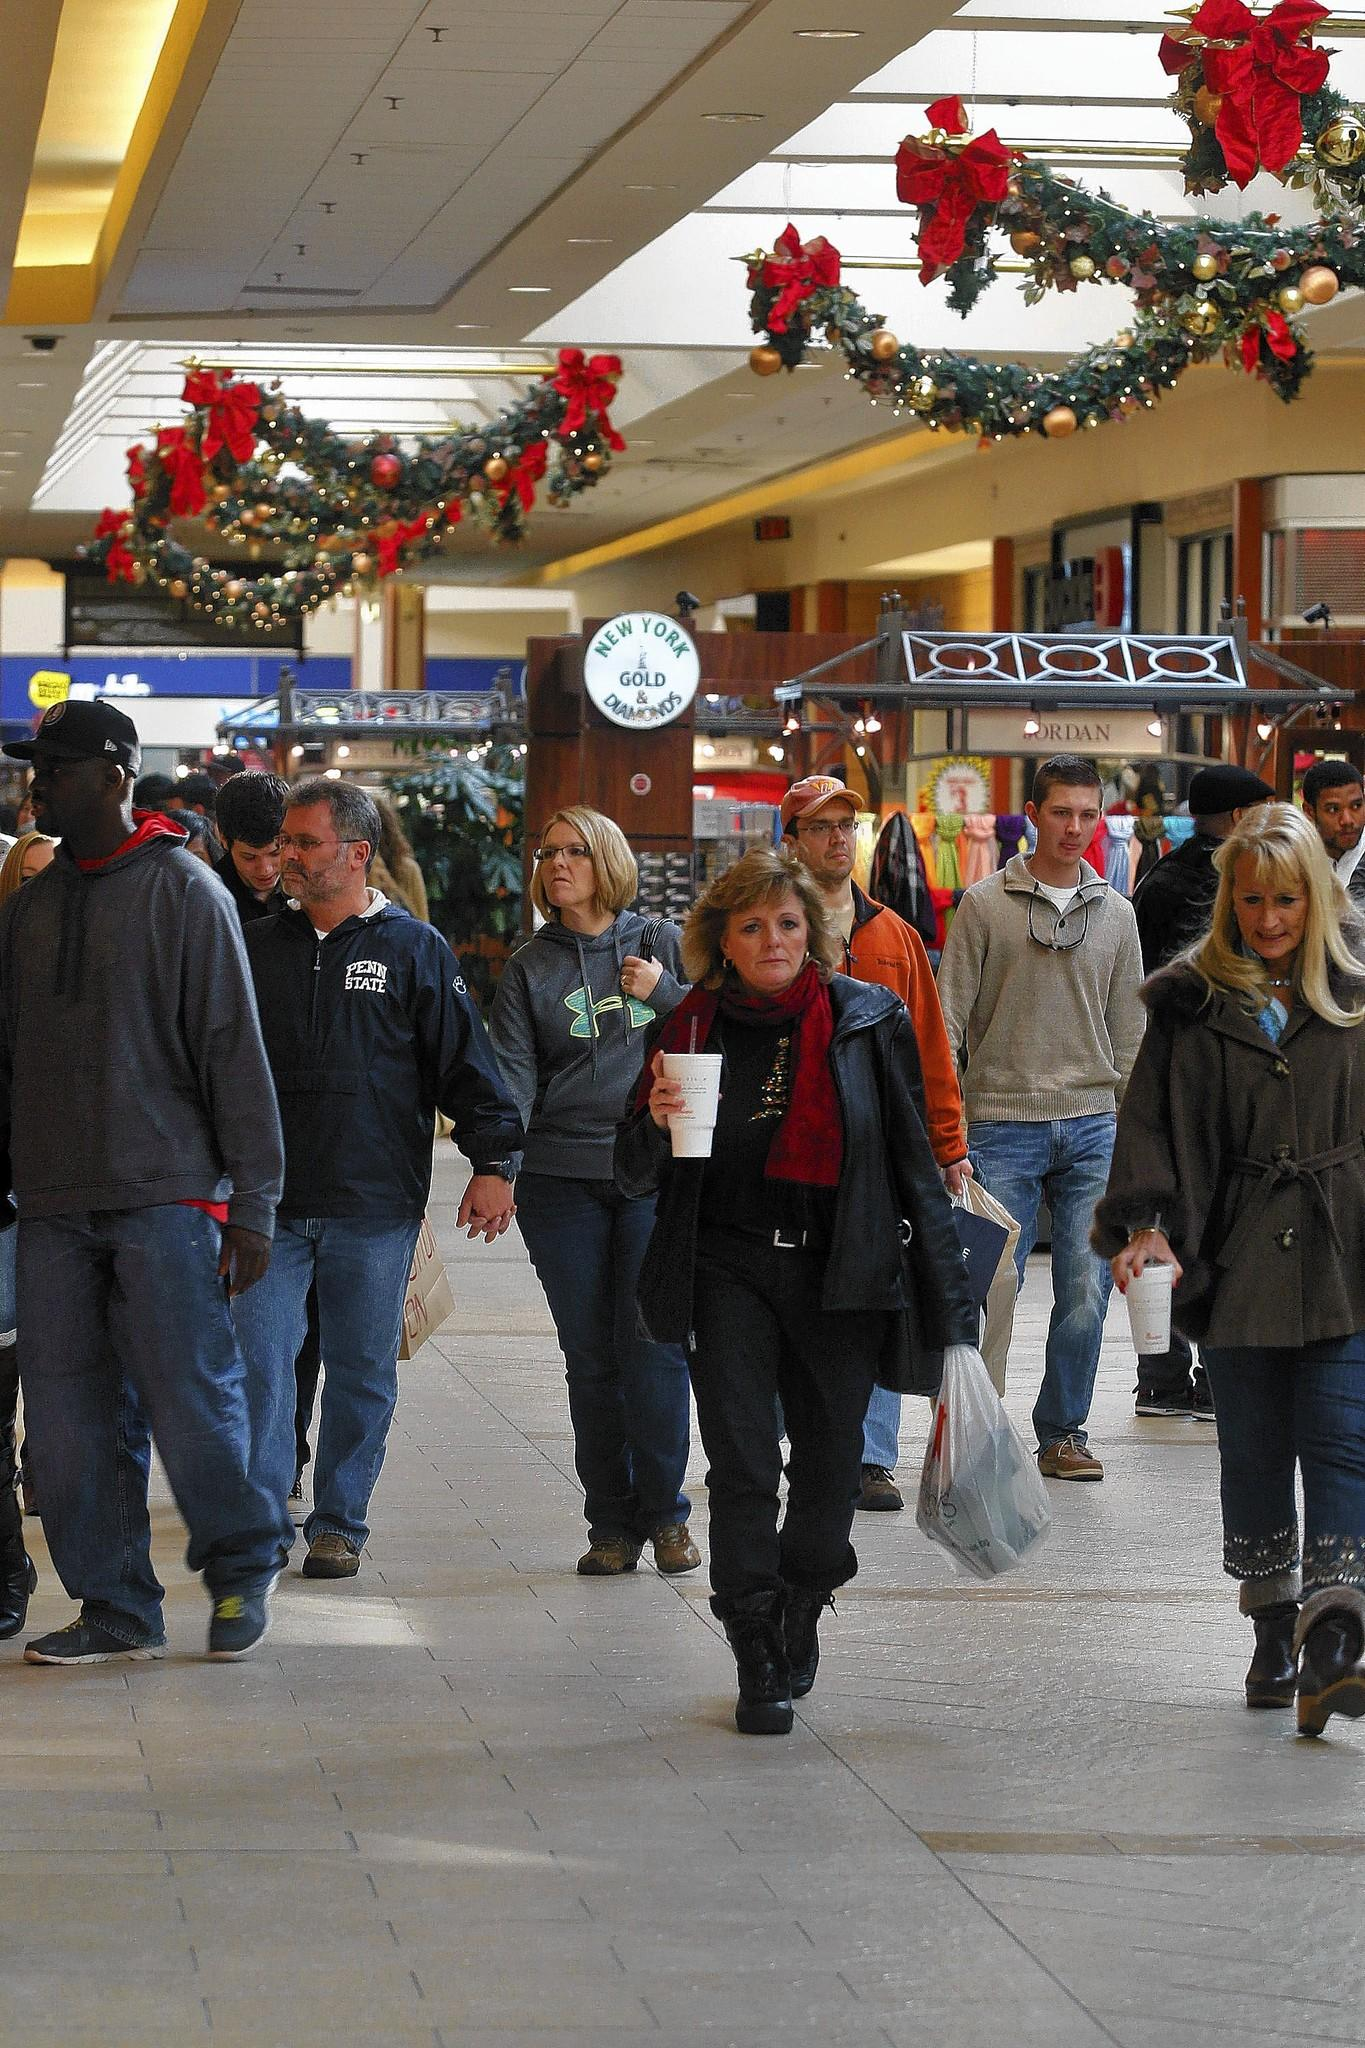 Hoping to catch a deal, shoppers hit Patrick Henry Mall in Newport News in December.